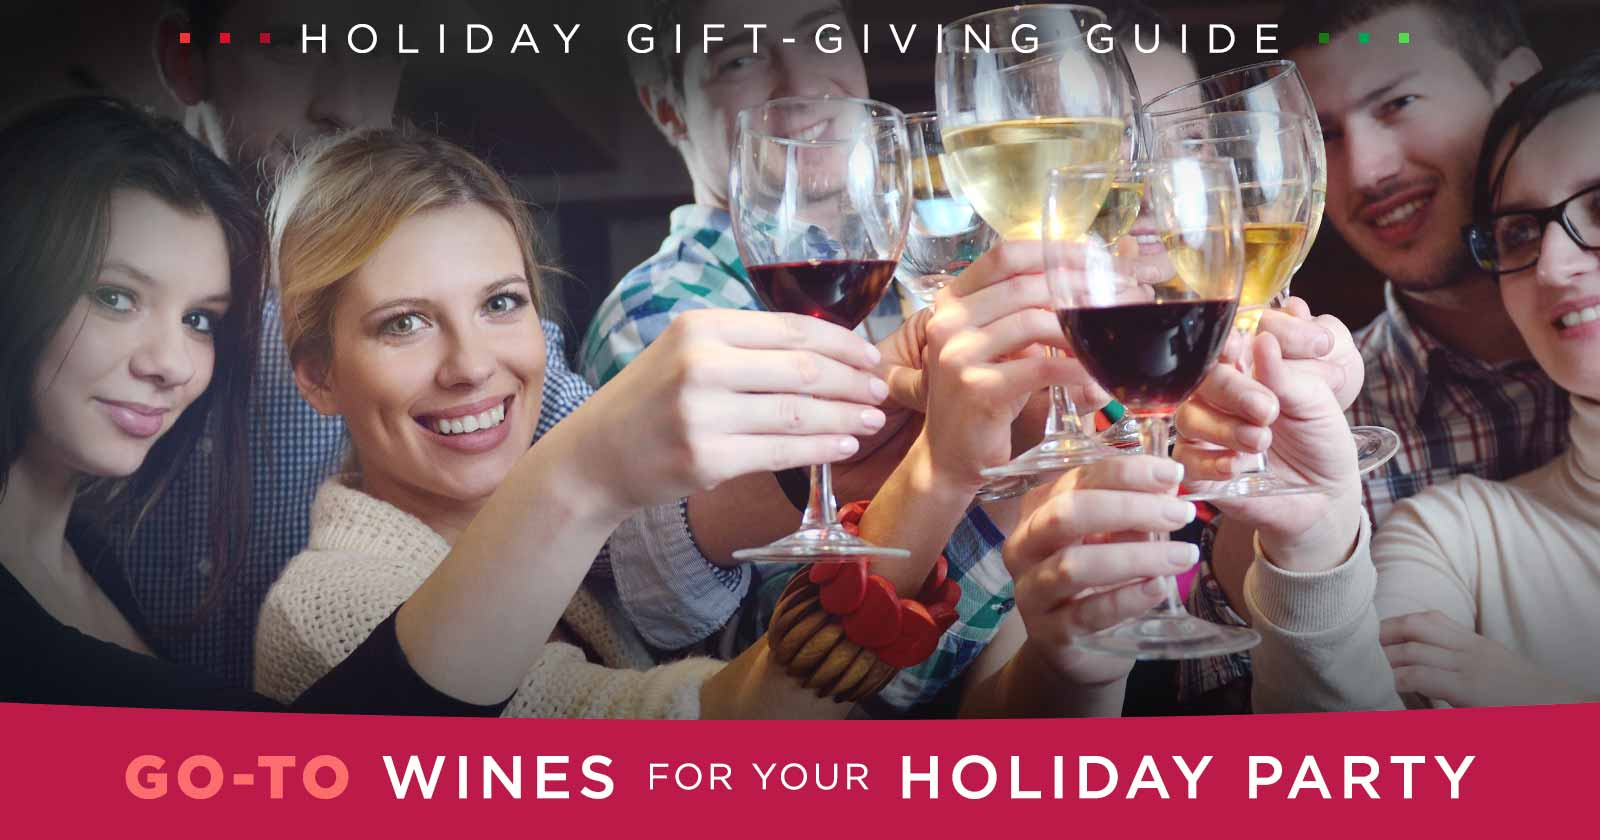 Go-To Wines for Your Holiday Party